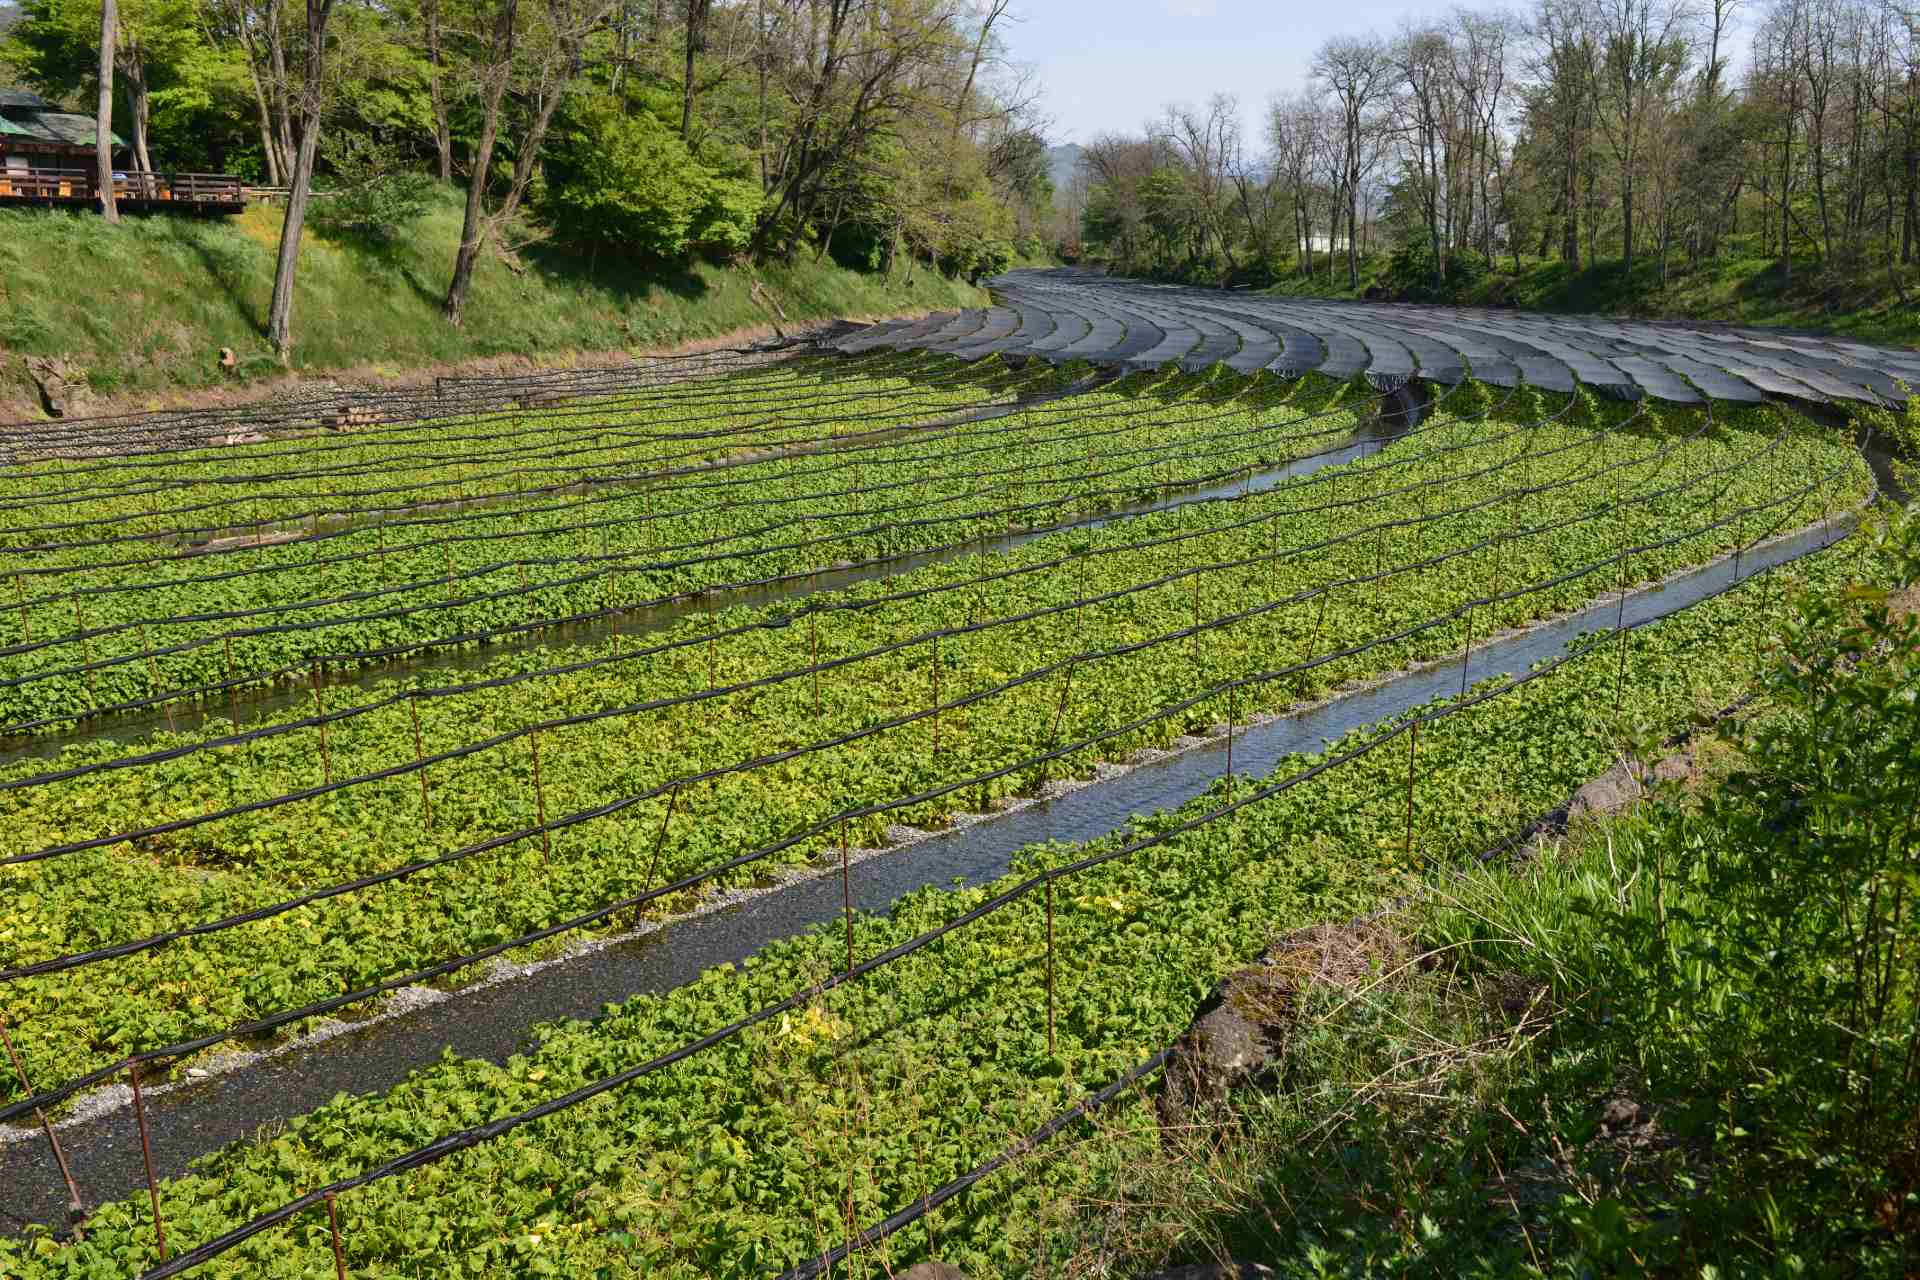 wasabi cultivation ©iStock